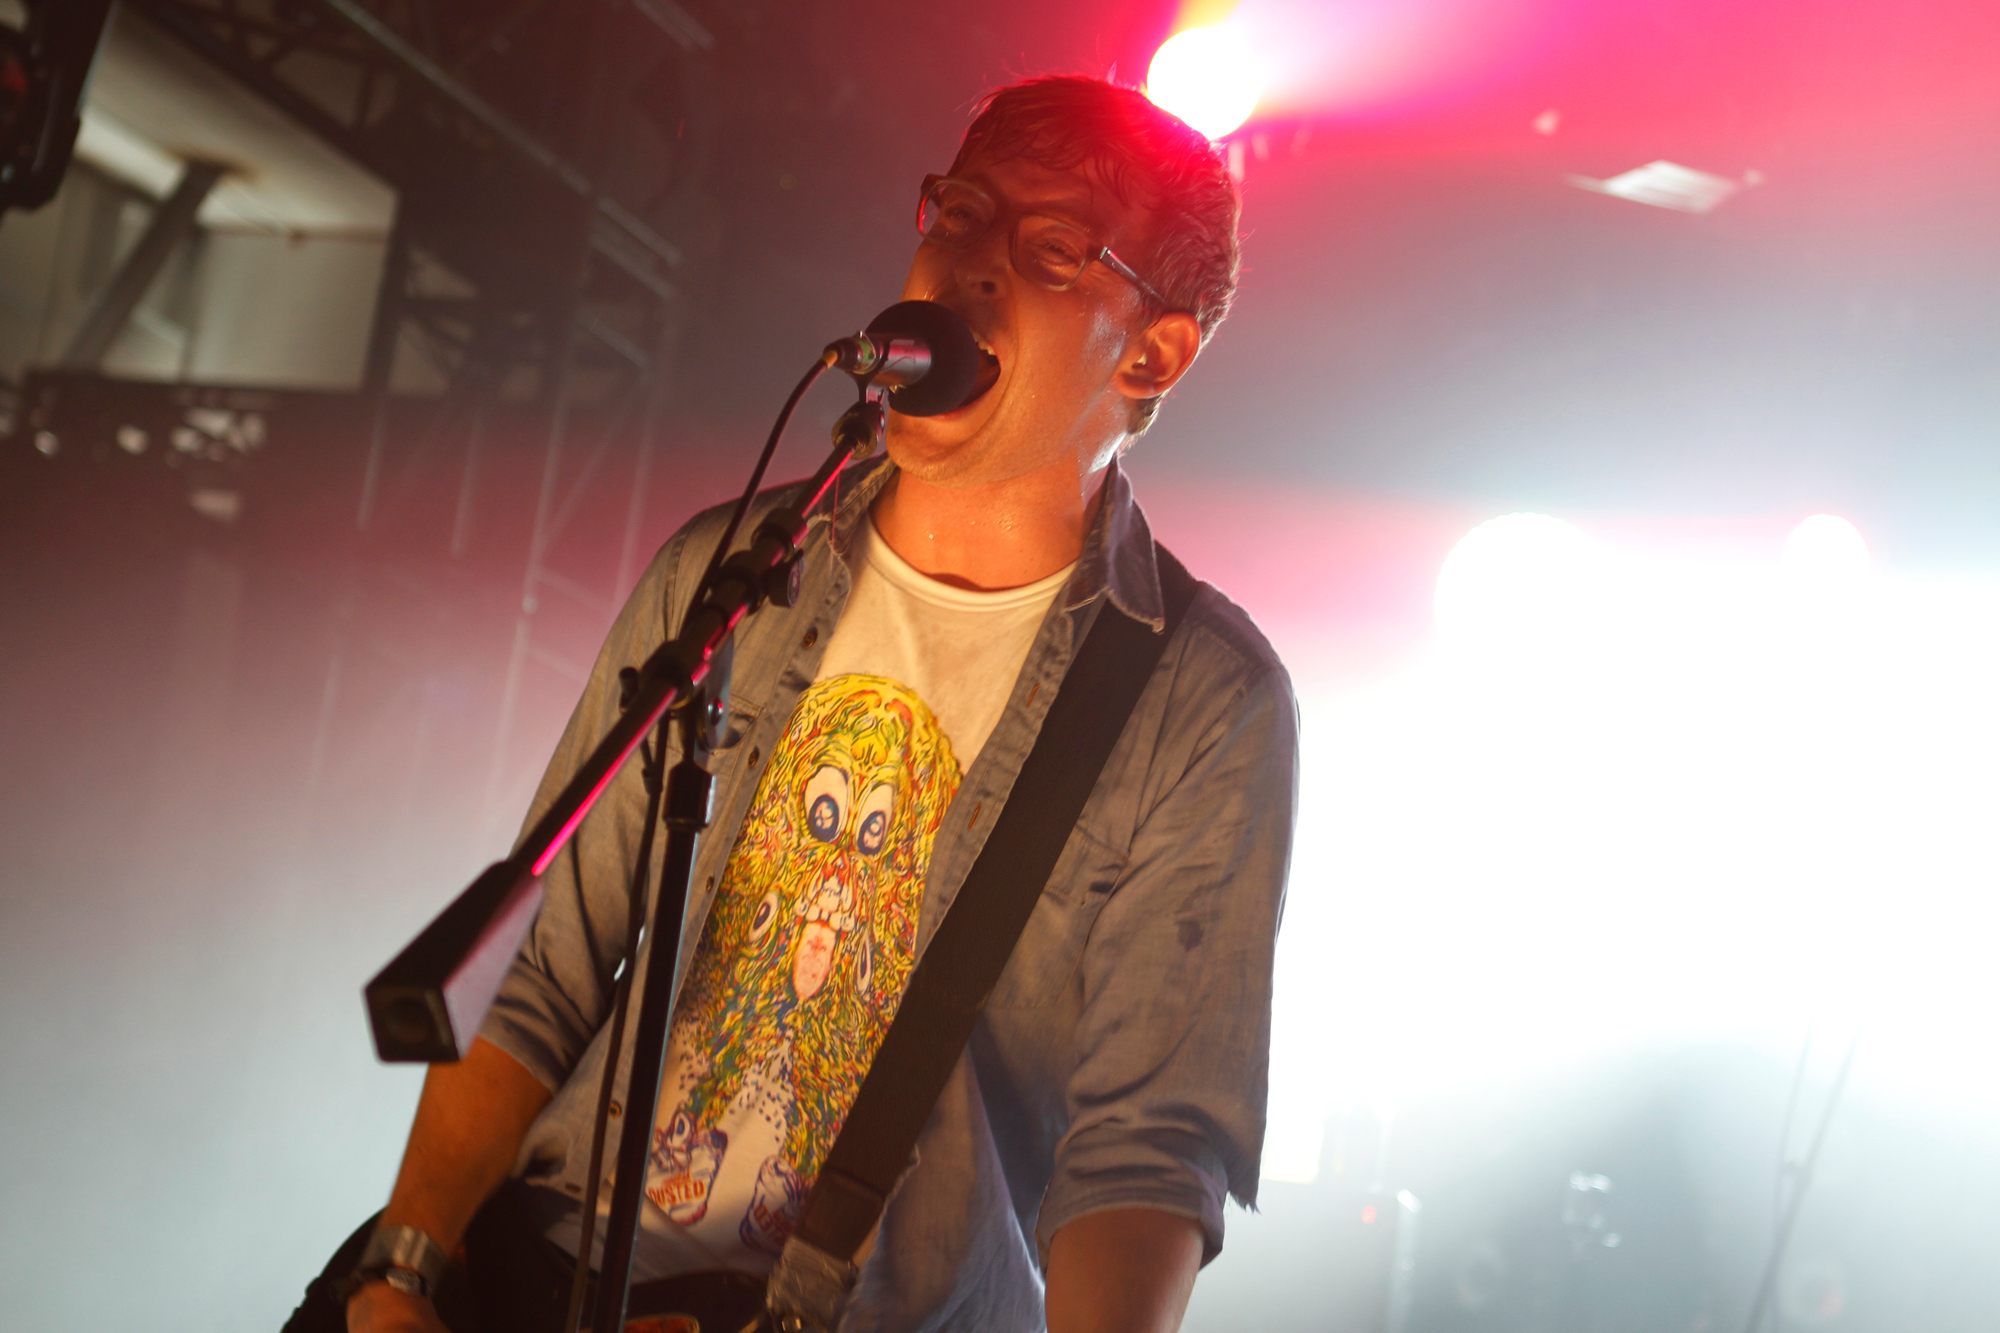 METZ performs at the Hype Hotel during South By Southwest in Austin, Texas on March 15, 2013.